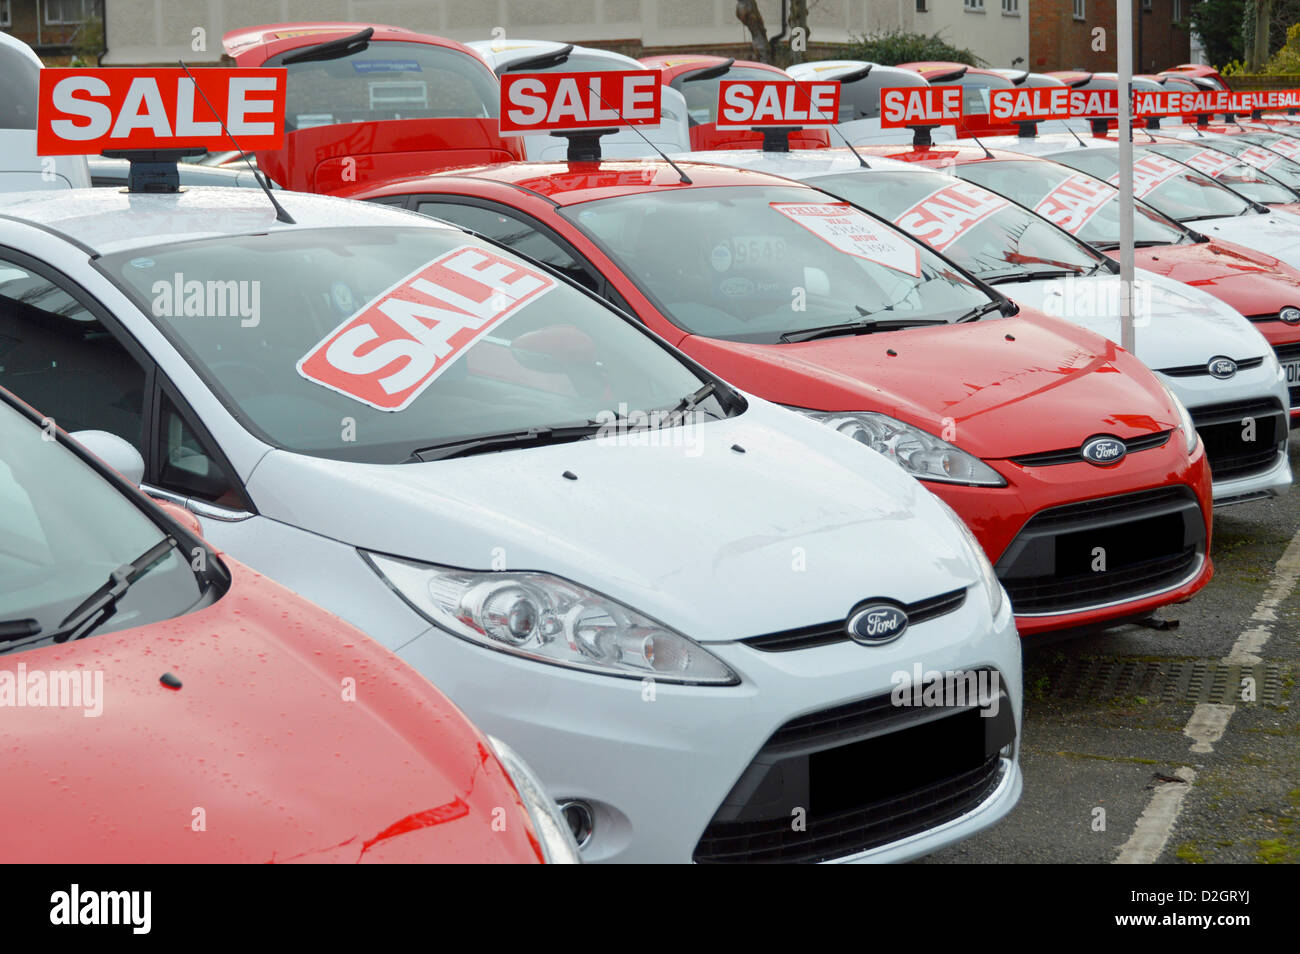 Sale of used Ford cars on dealership forecourt outside showroom arranged alternate red and white obscured numberplates & Sale of used Ford cars on dealership forecourt outside showroom ... markmcfarlin.com